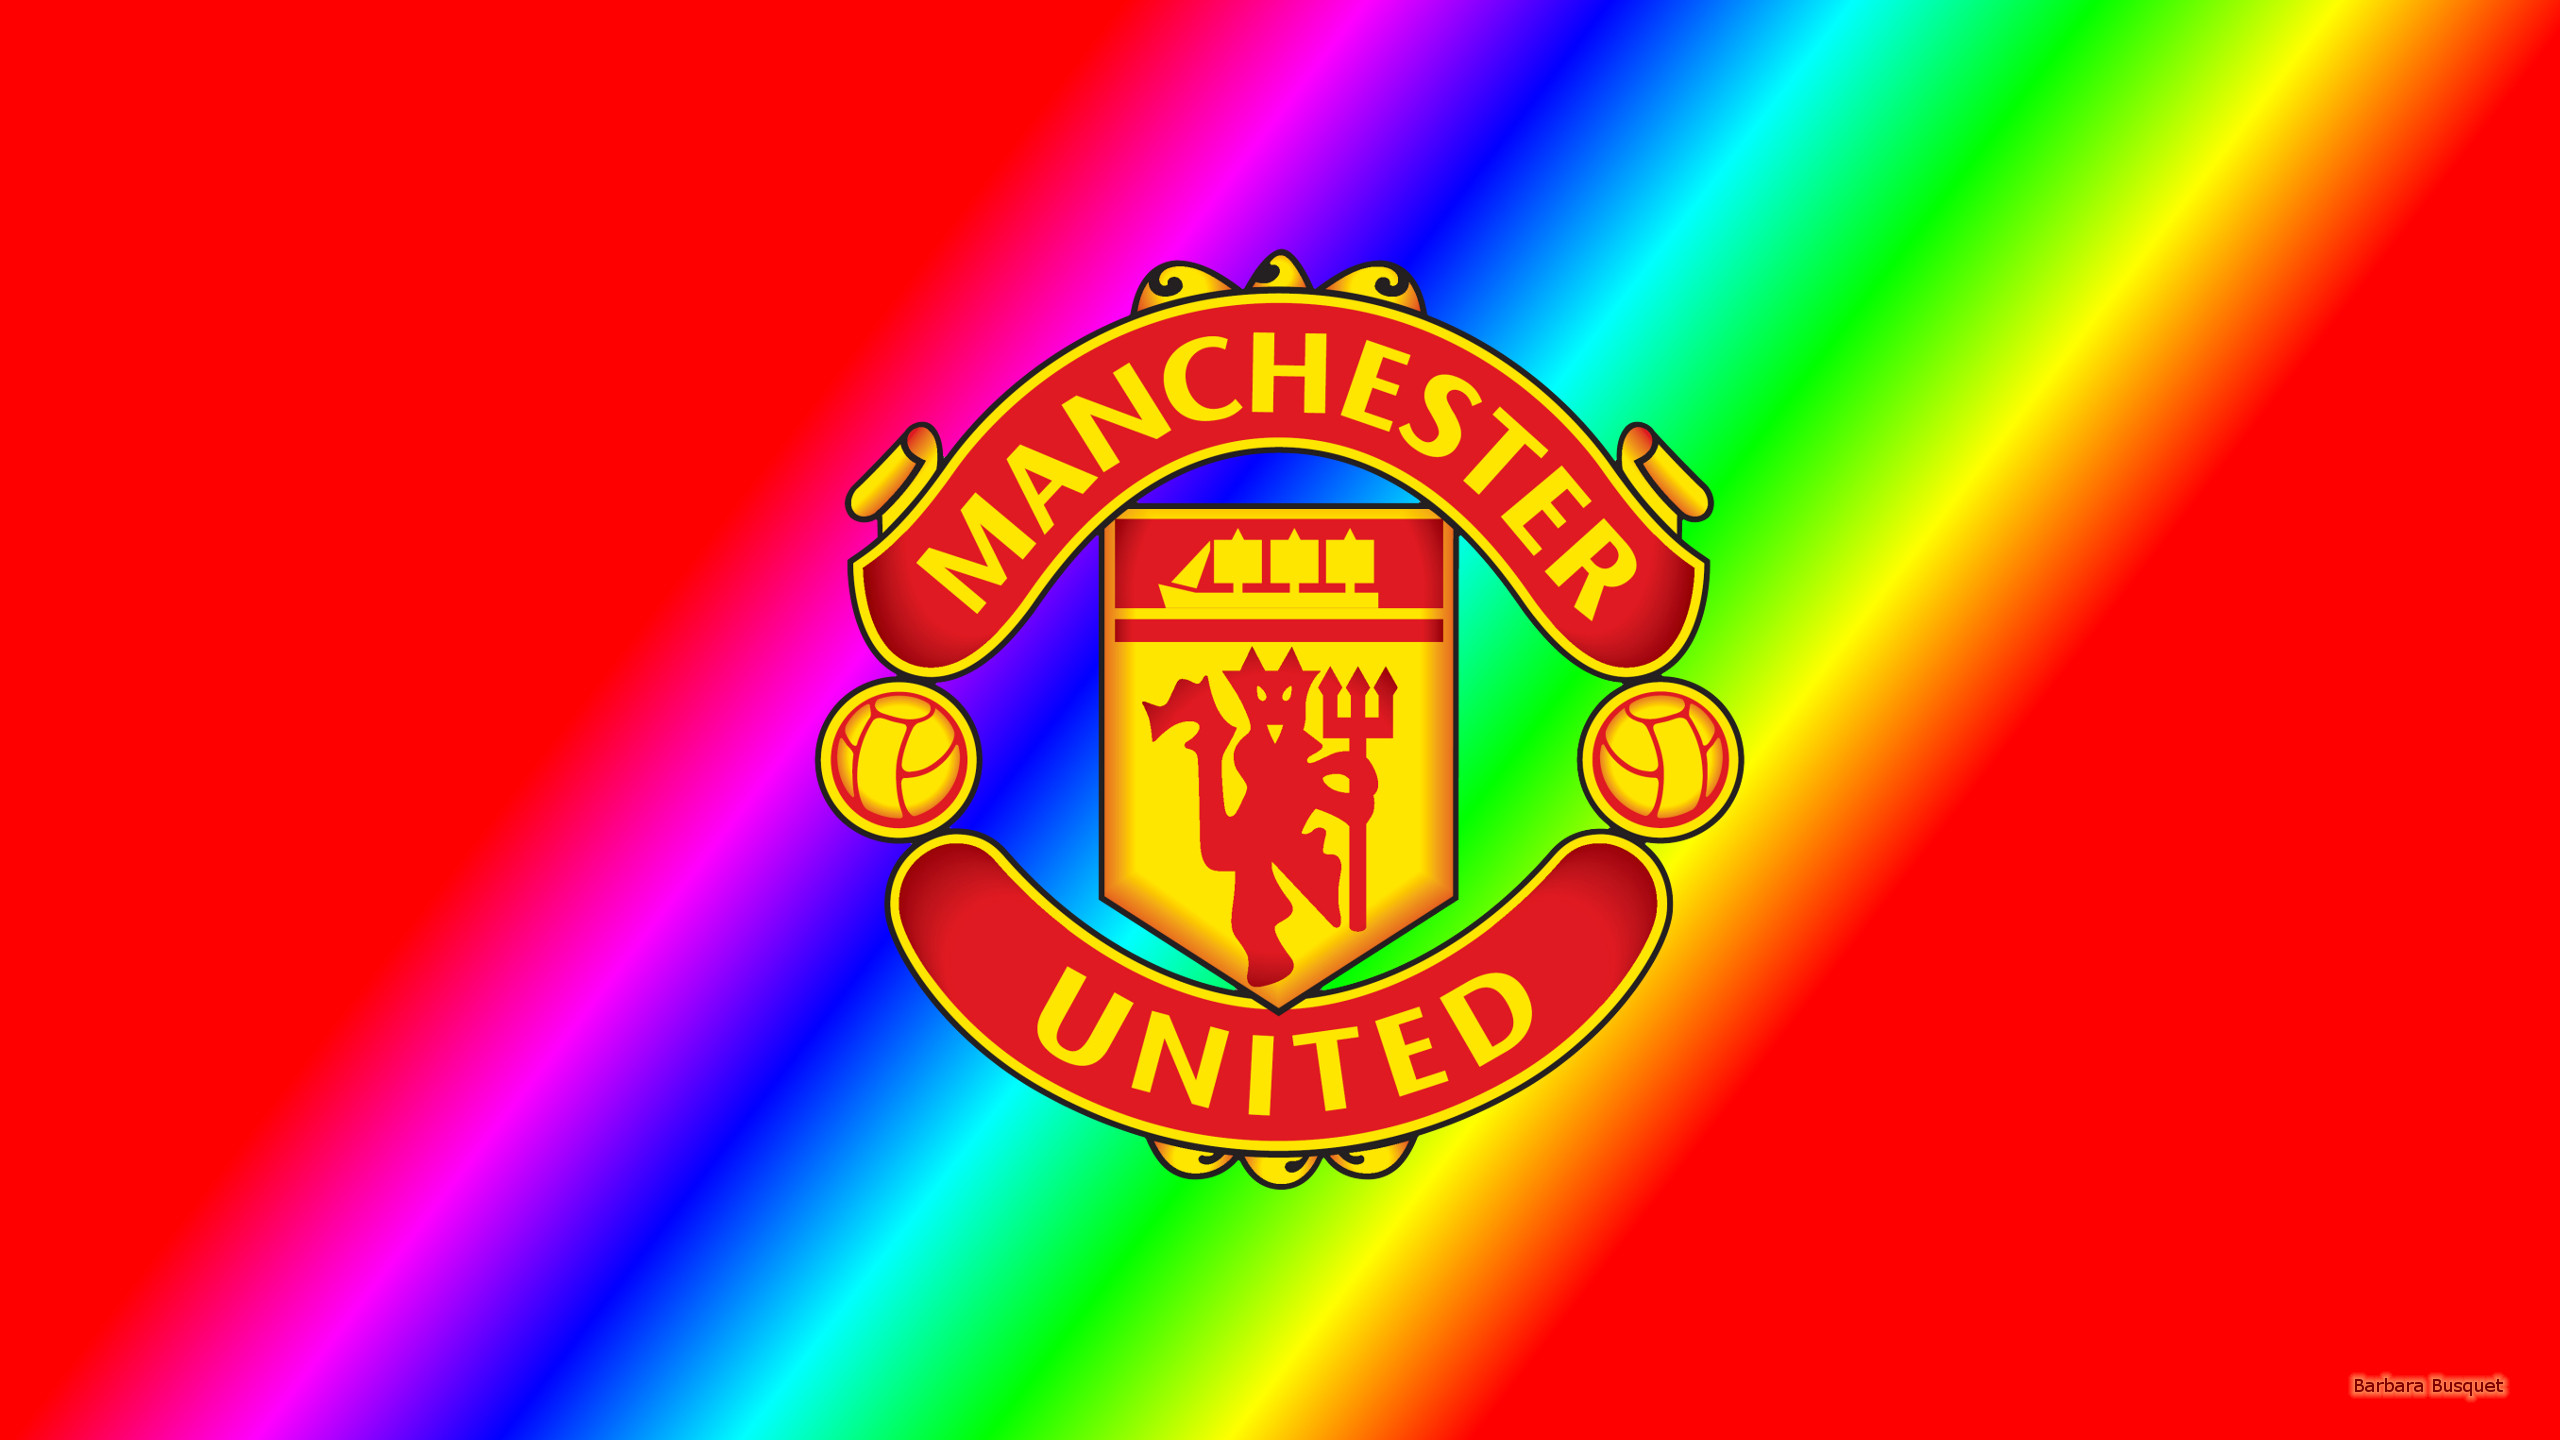 Red rainbow wallpaper with Manchester United logo 1